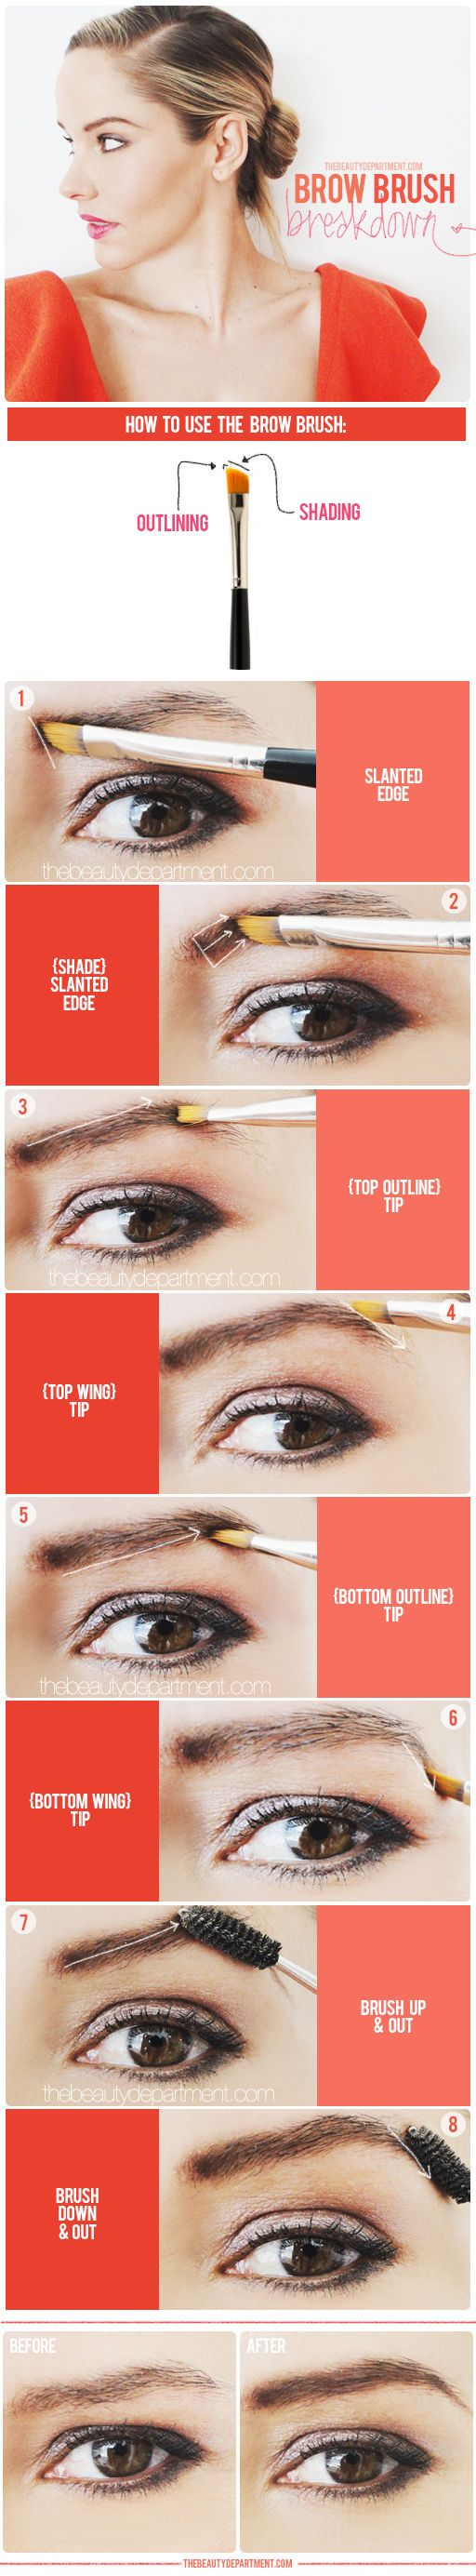 Good to know: how to use a brow brush.